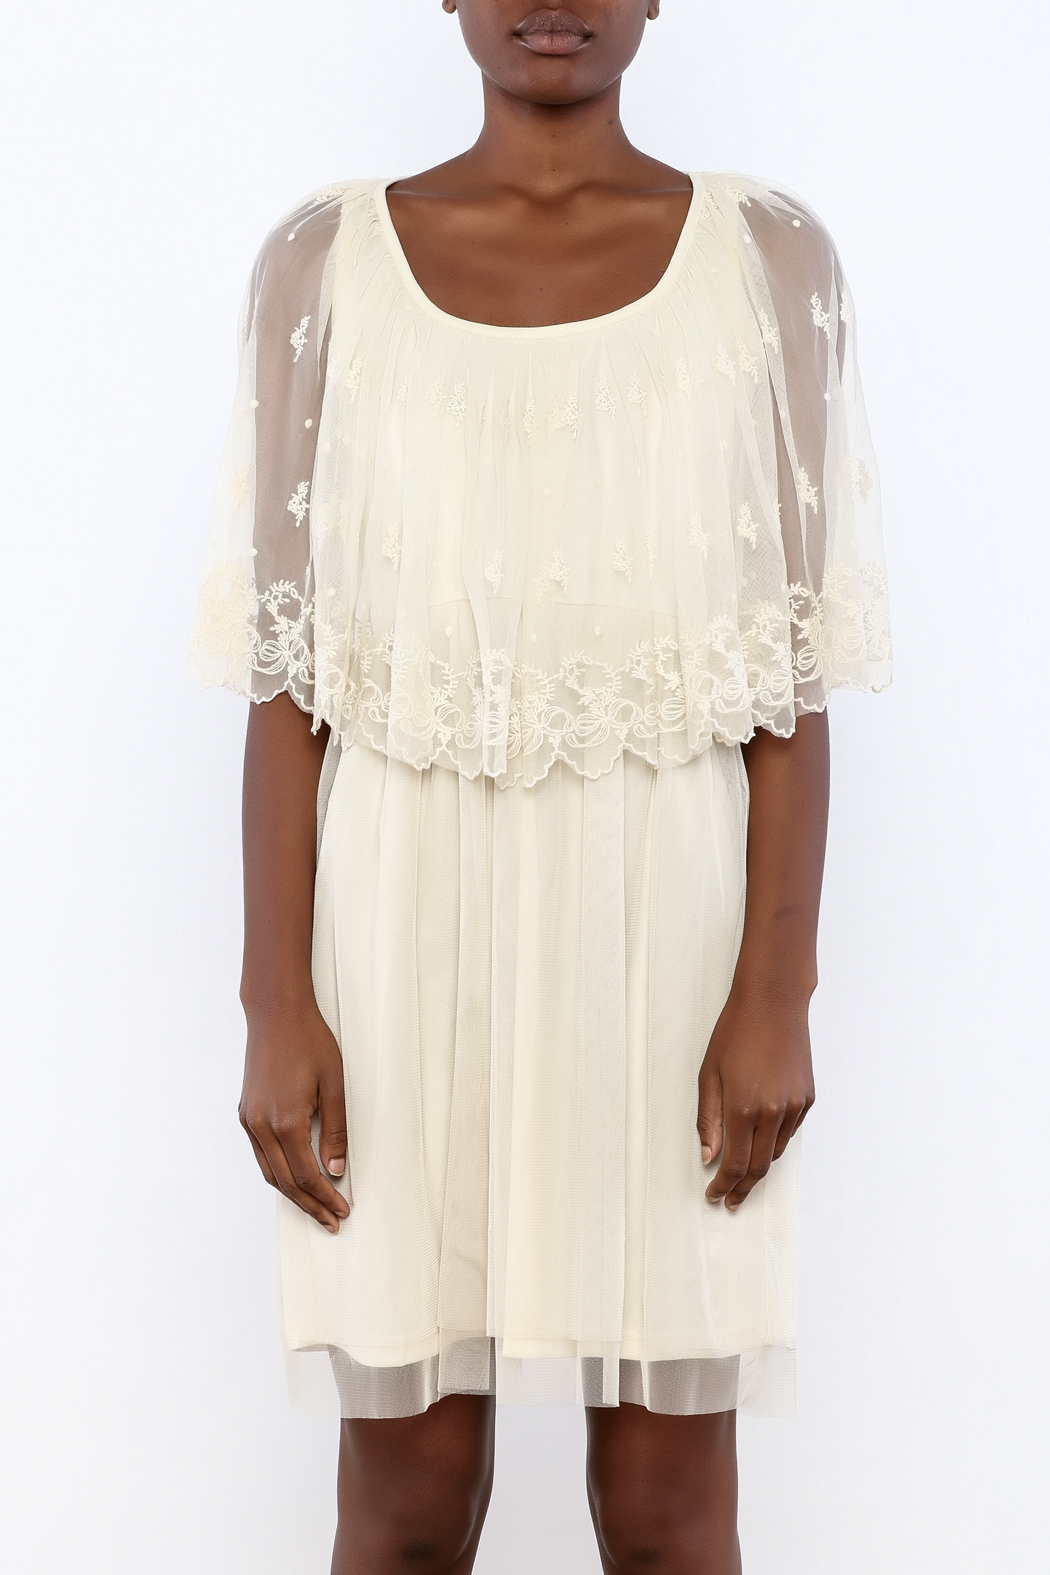 A'reve Ivory Caplet Lace Dress - Side Cropped Image